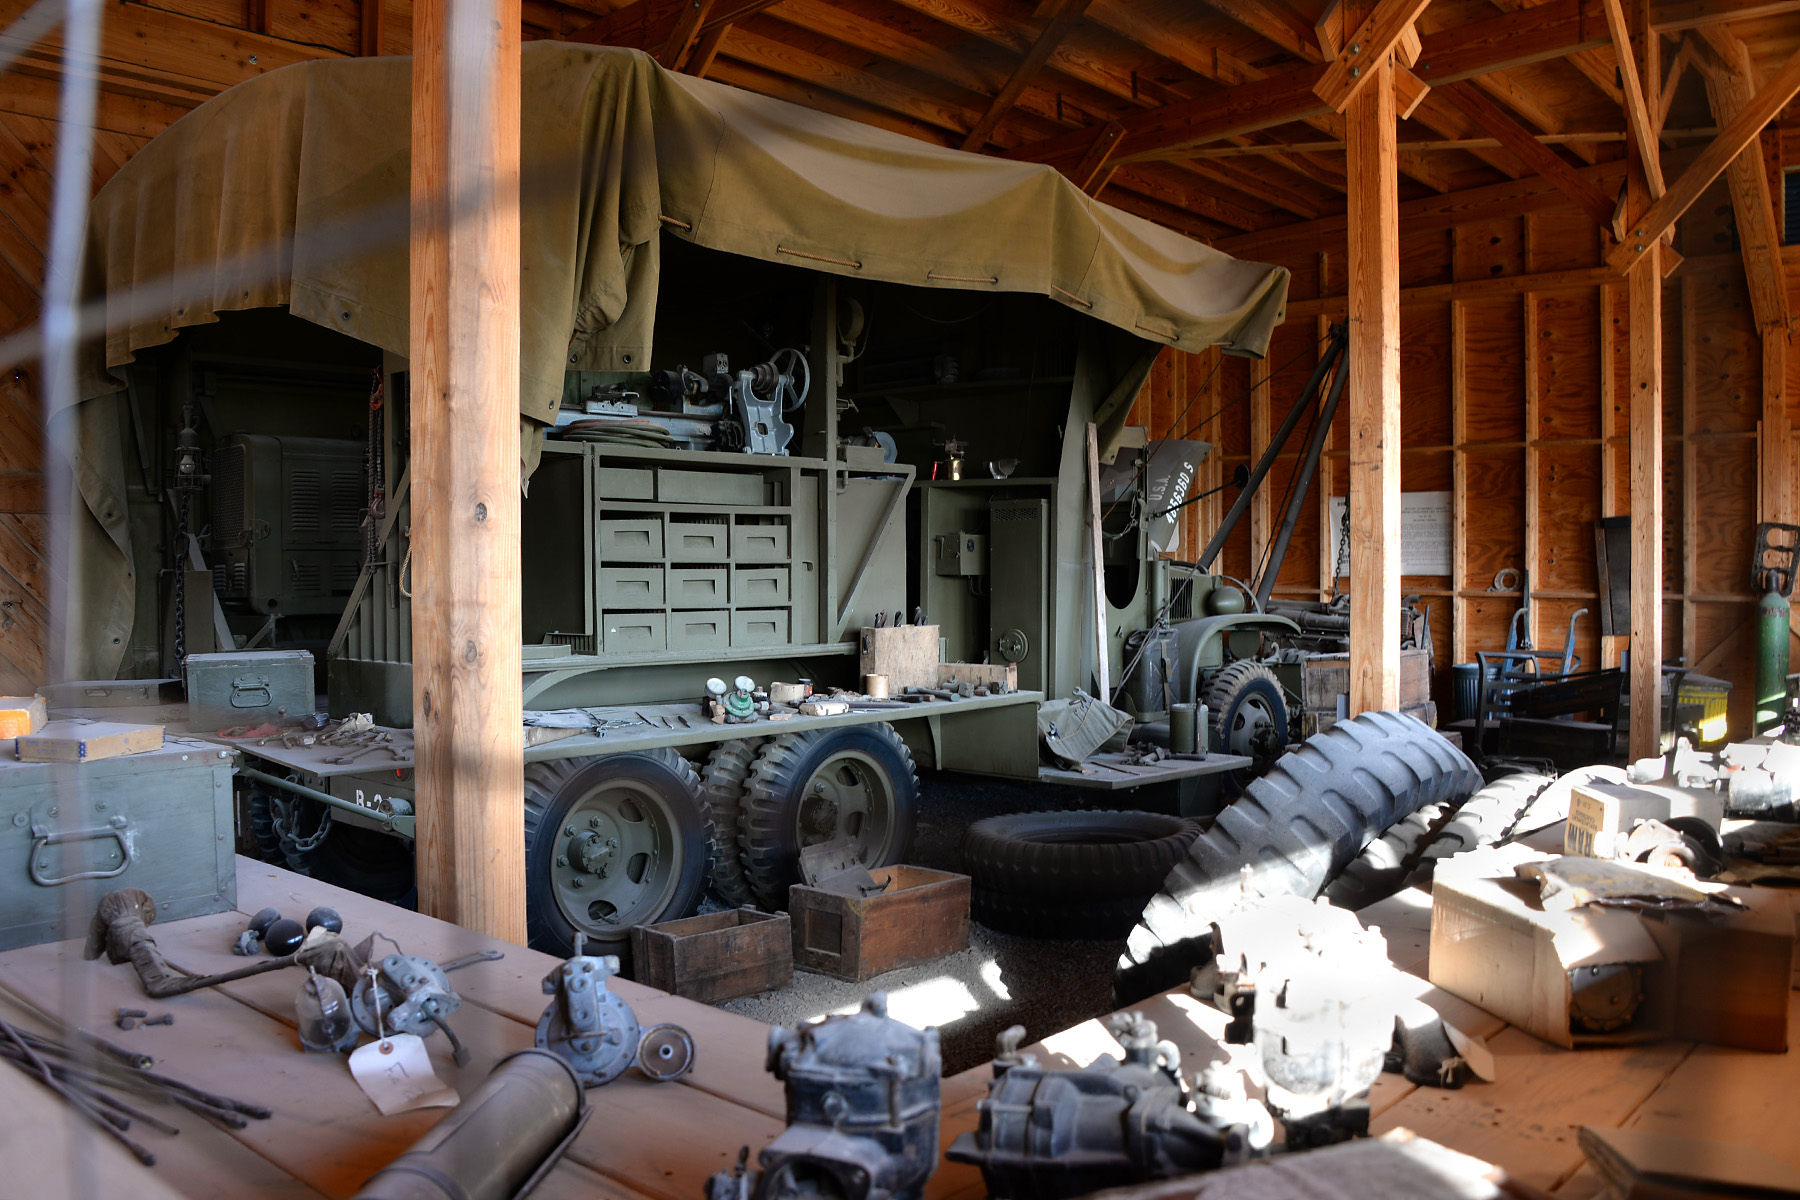 One of the outdoor exhibits at the US Army Heritage and Education Center in Carlisle.